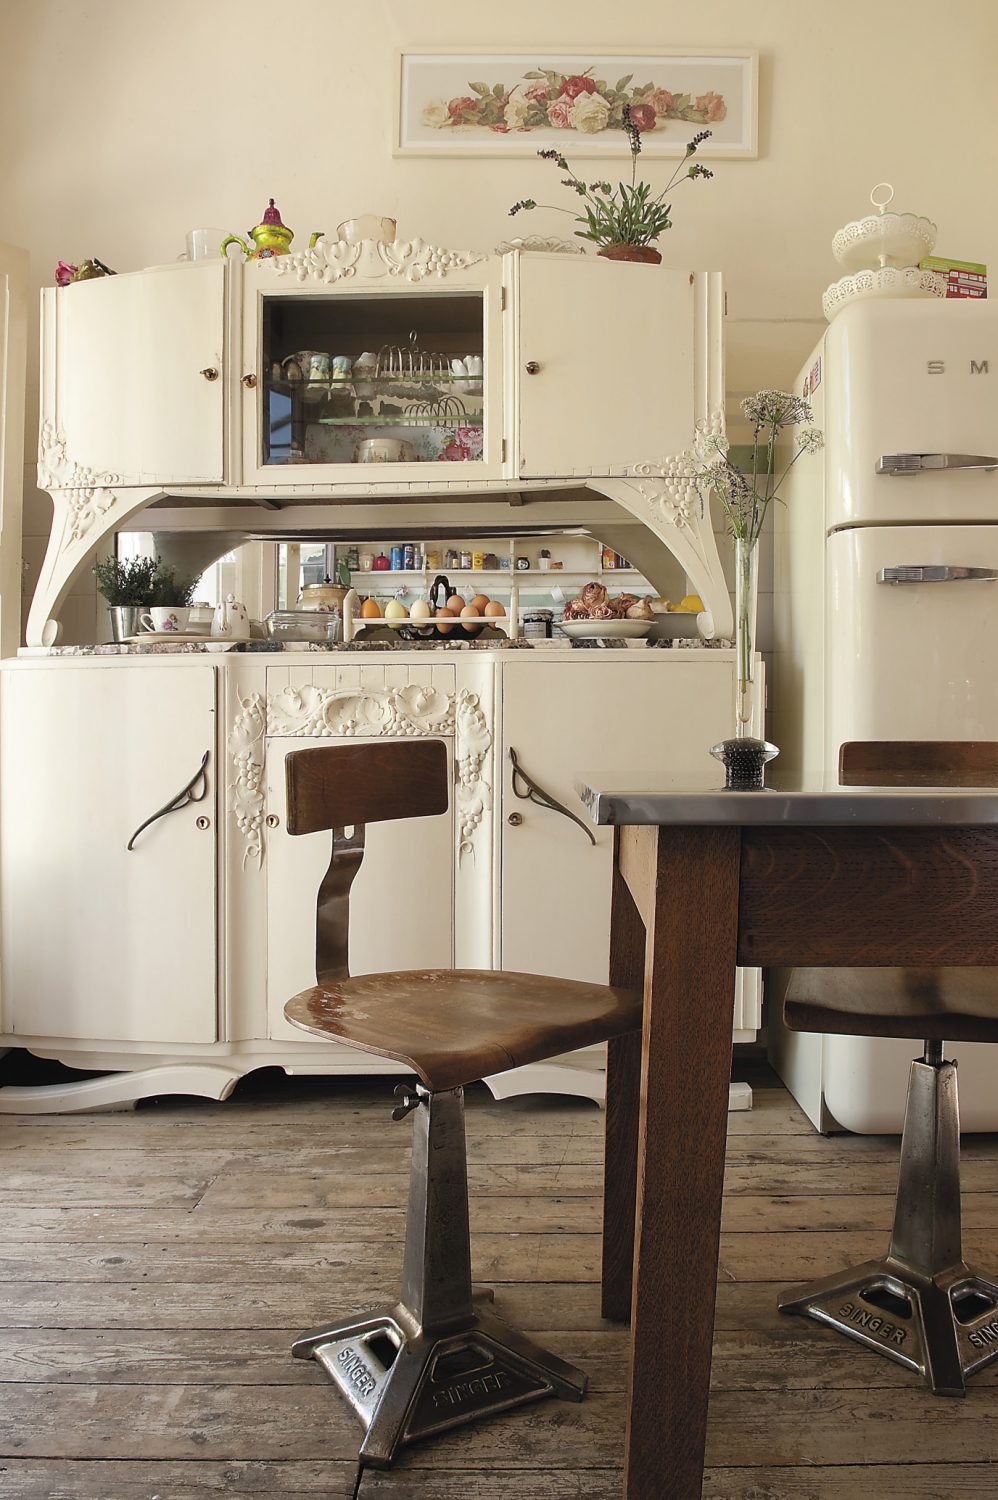 the chairs sorrounding the kitchen table were reclaimed from an old Singer factory, whilst the imposing dresser is another one of Vickie's eBay finds